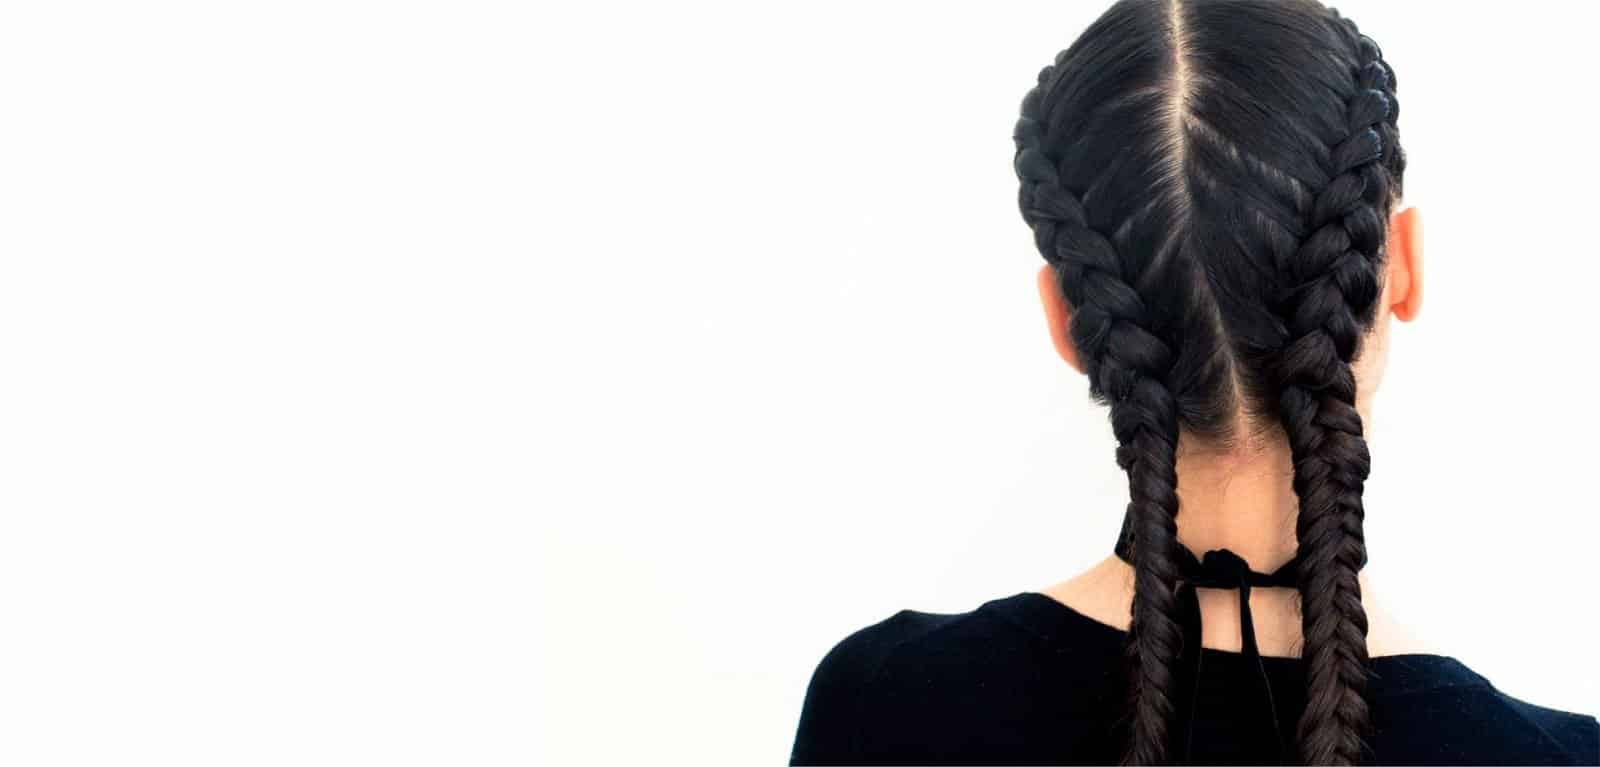 - Top hairstyles pretty enough to wear all day - COSMO® Beauty Salon June 2021